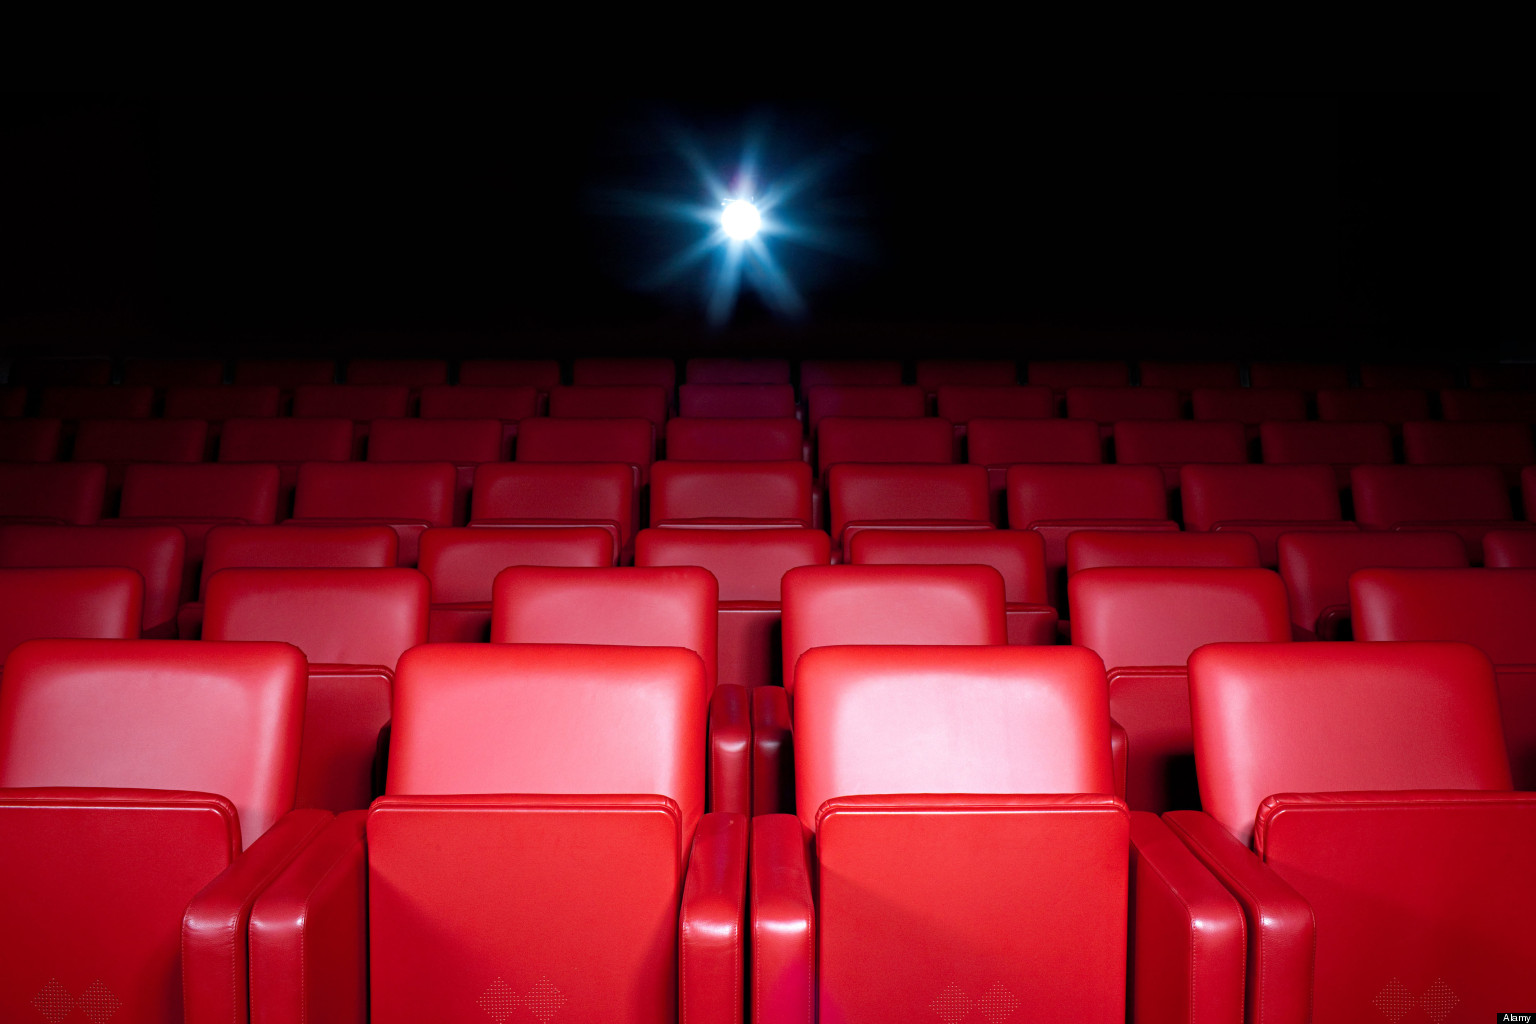 Third World Theater: One Writer's Experience at the Movies ...